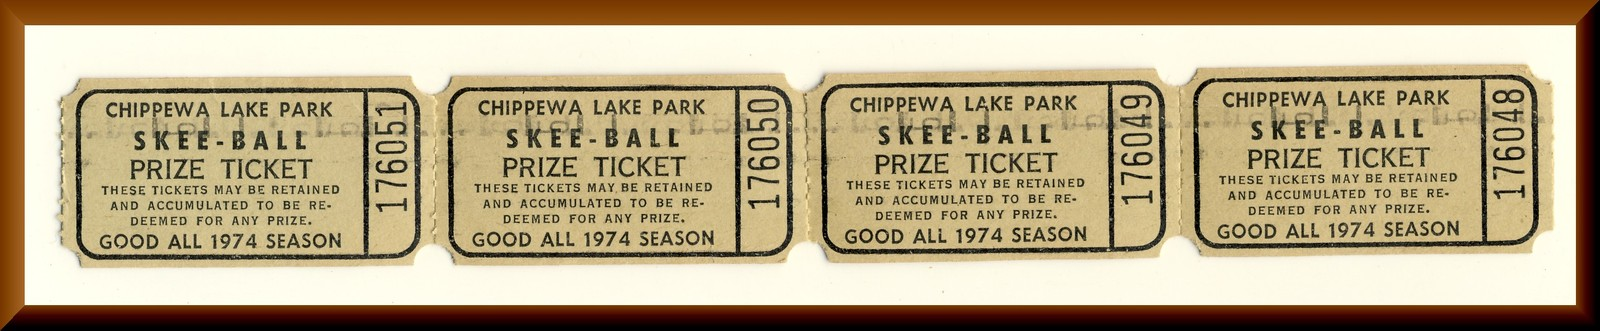 Chippewa lake park tickets 4